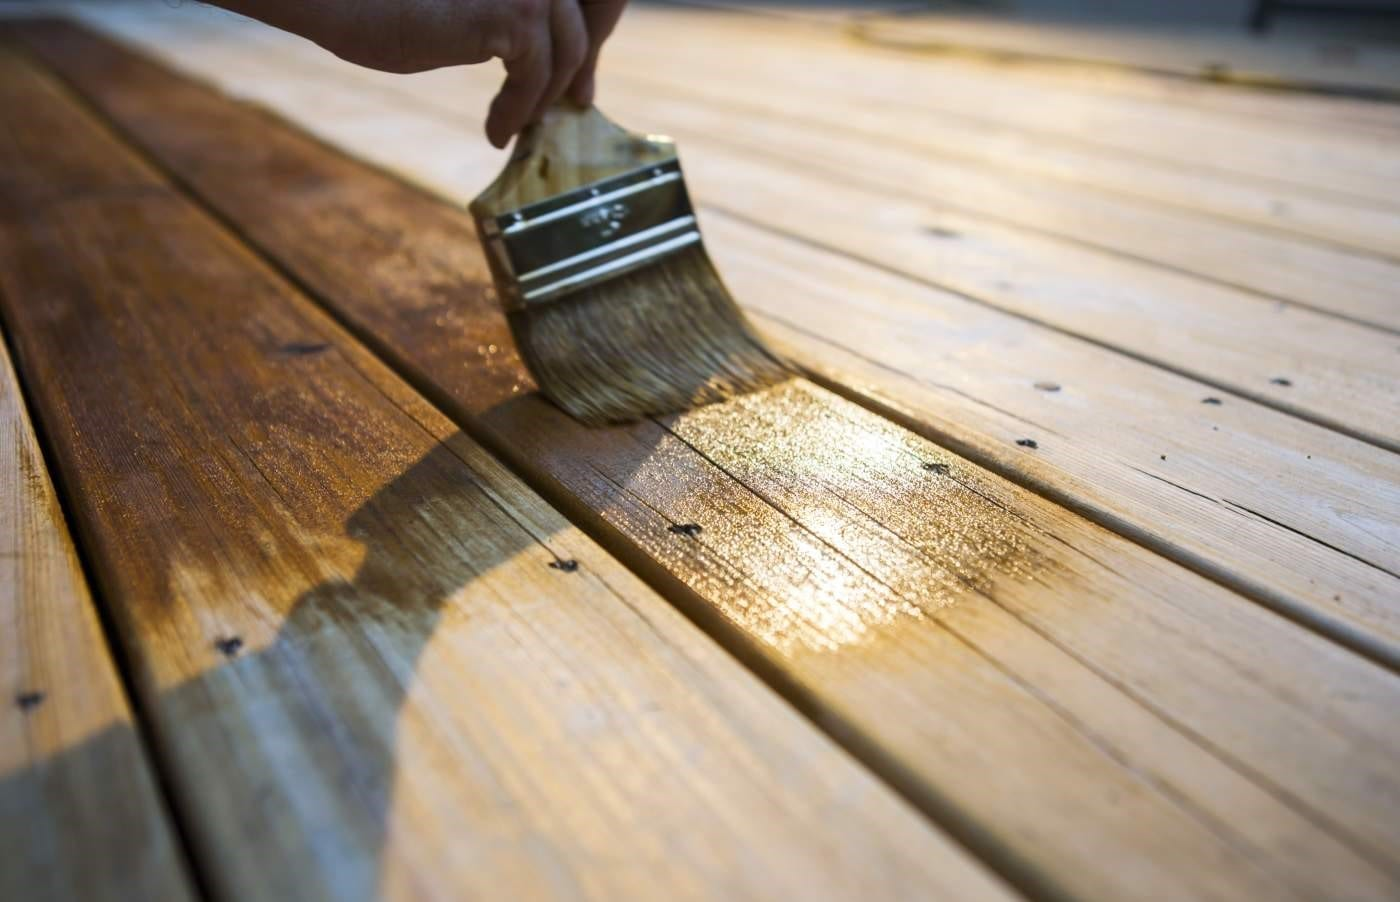 Are Wood Stain Fumes Harmful? – Cut The Wood